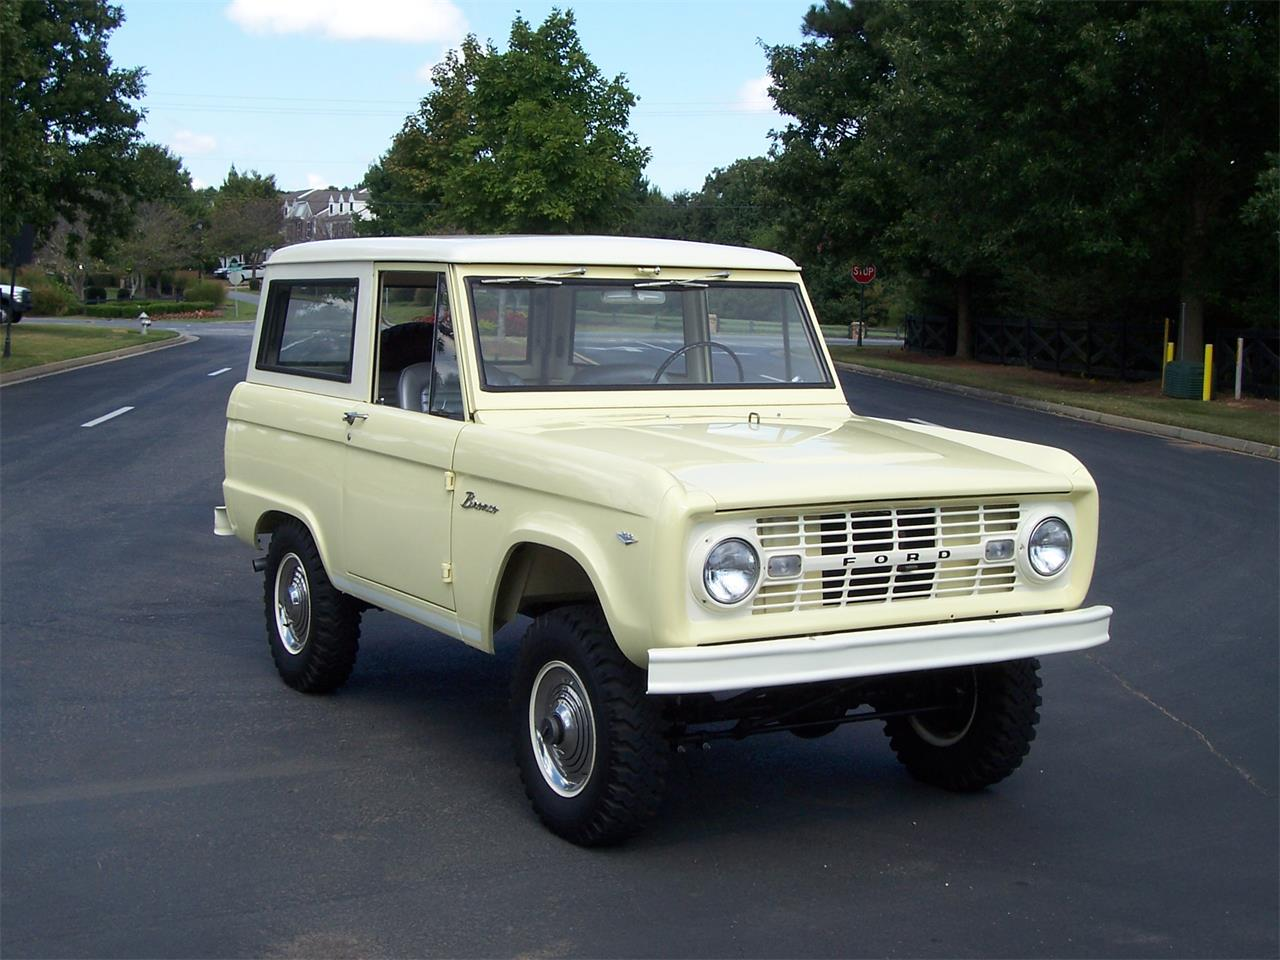 1966 Ford Bronco for sale in Alpharetta, GA – photo 5